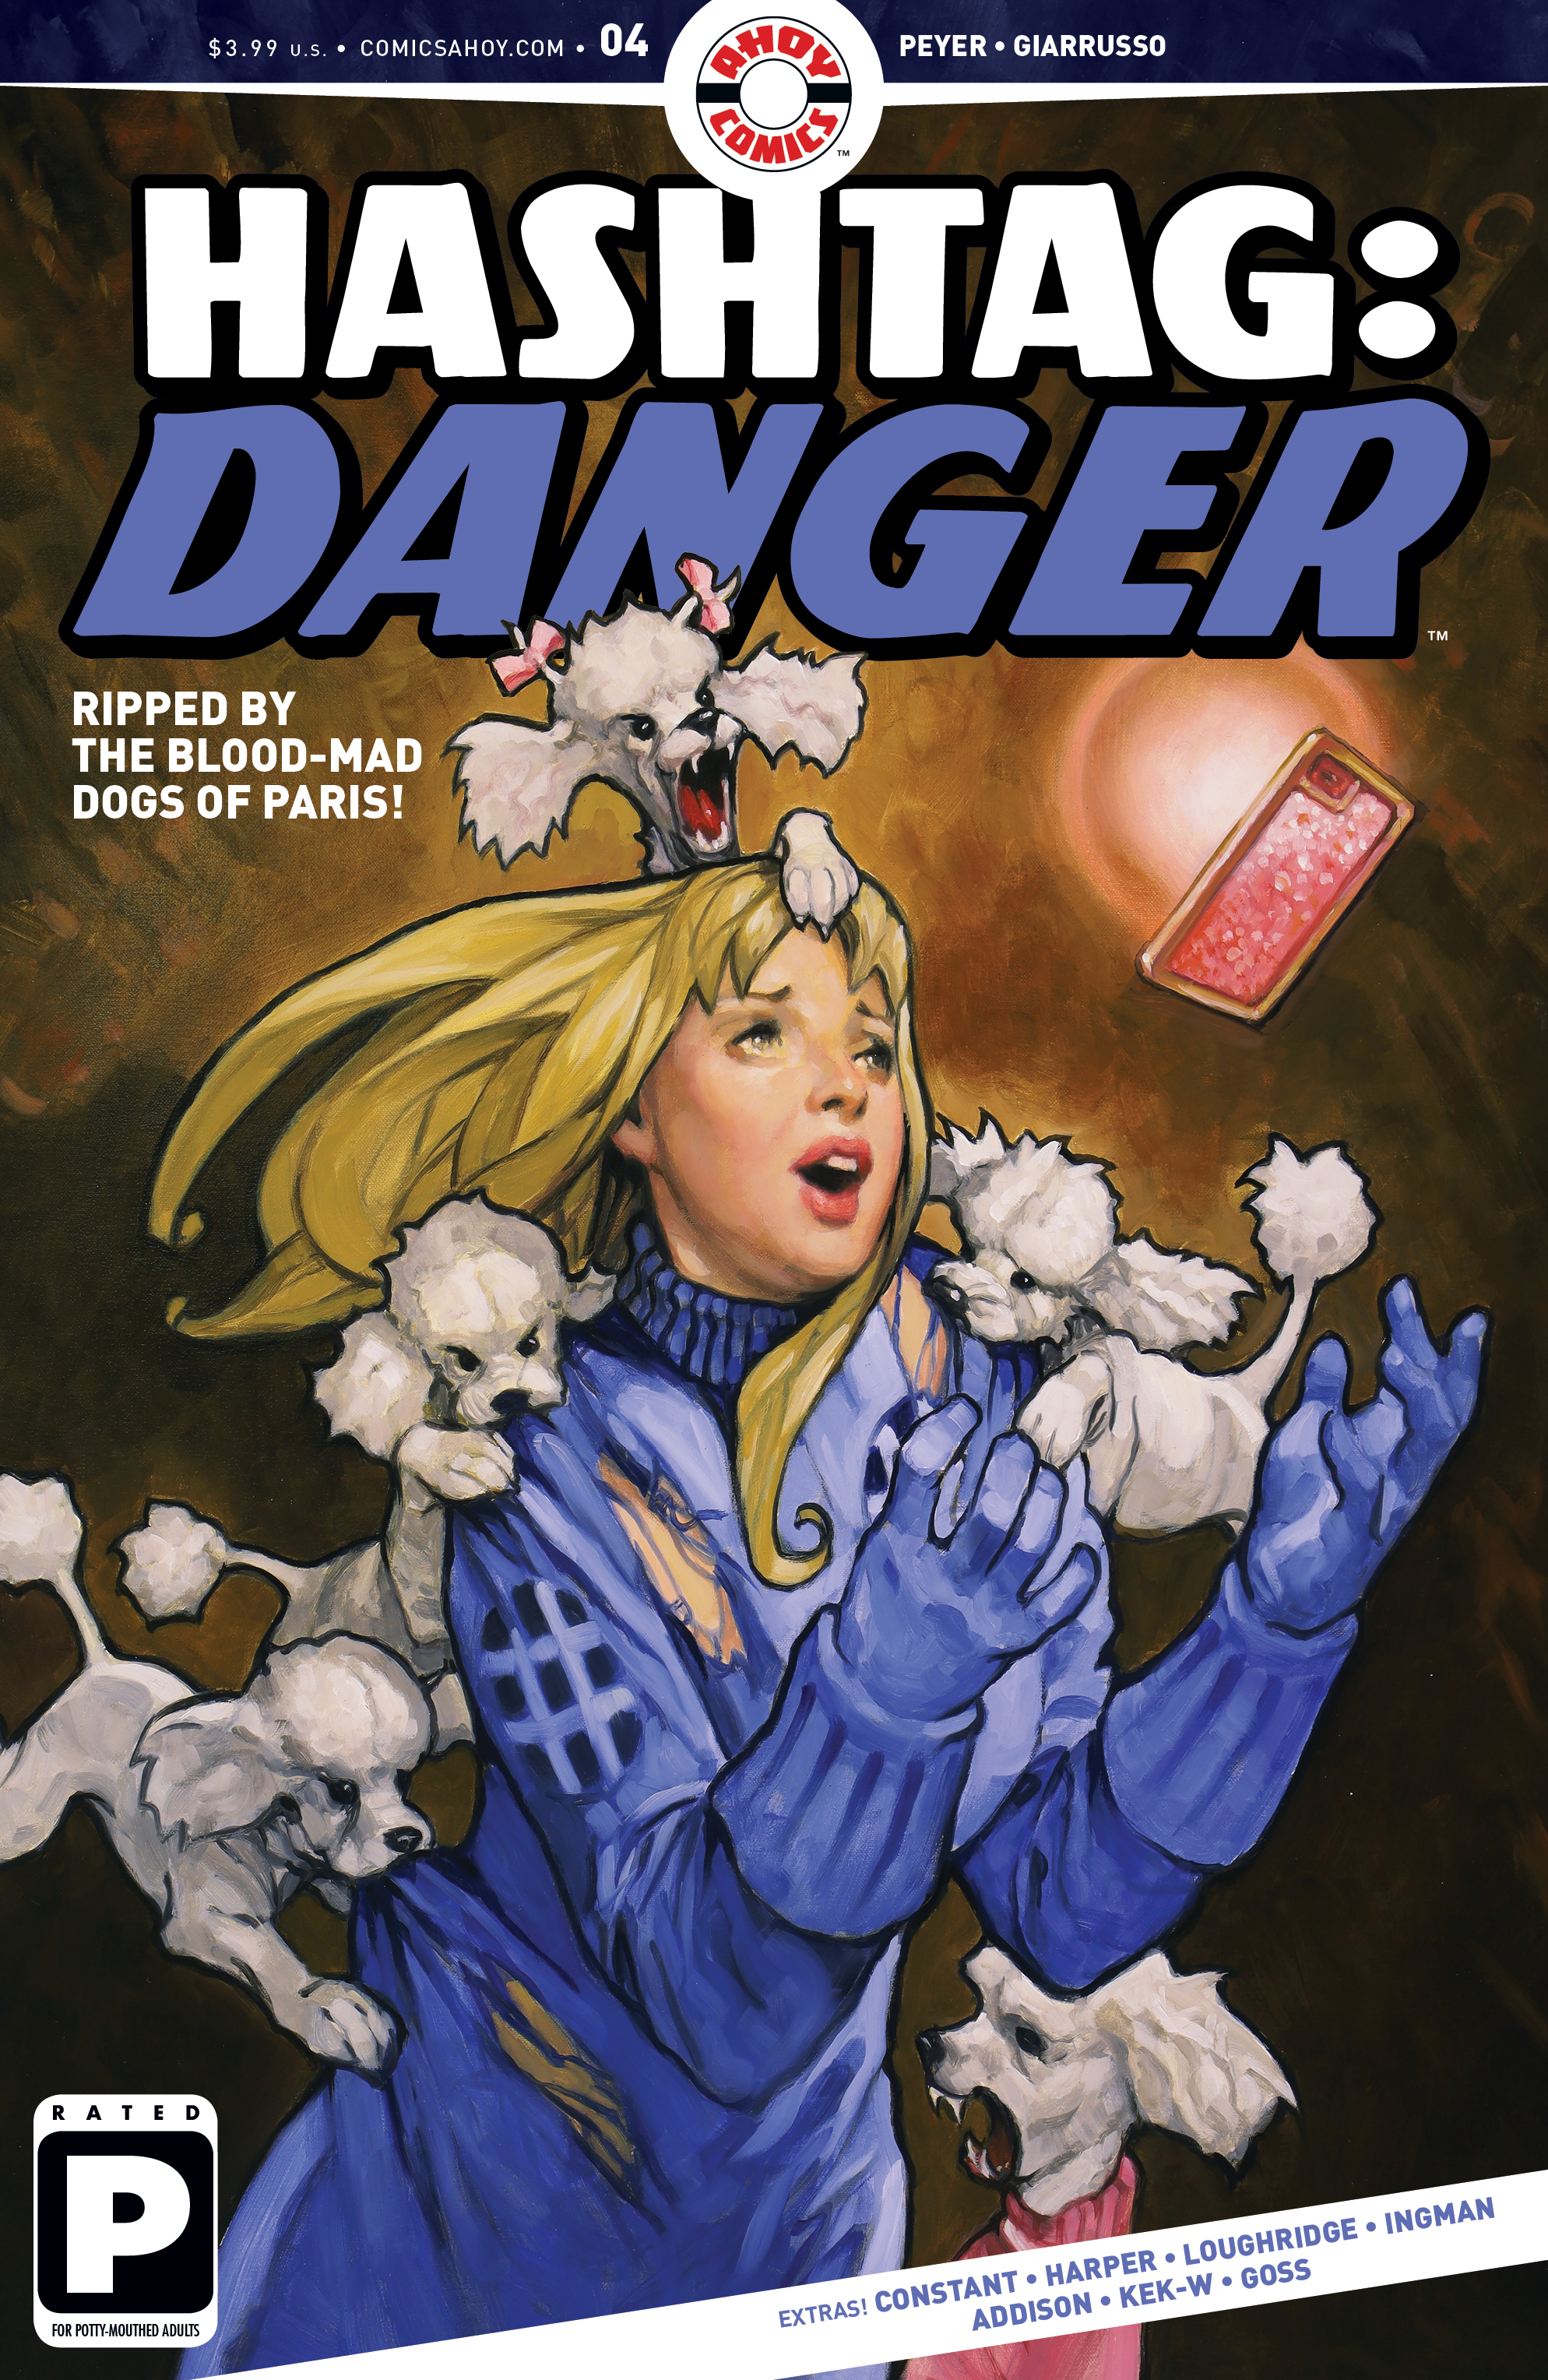 Exclusive Preview: HASHTAG: DANGER #4